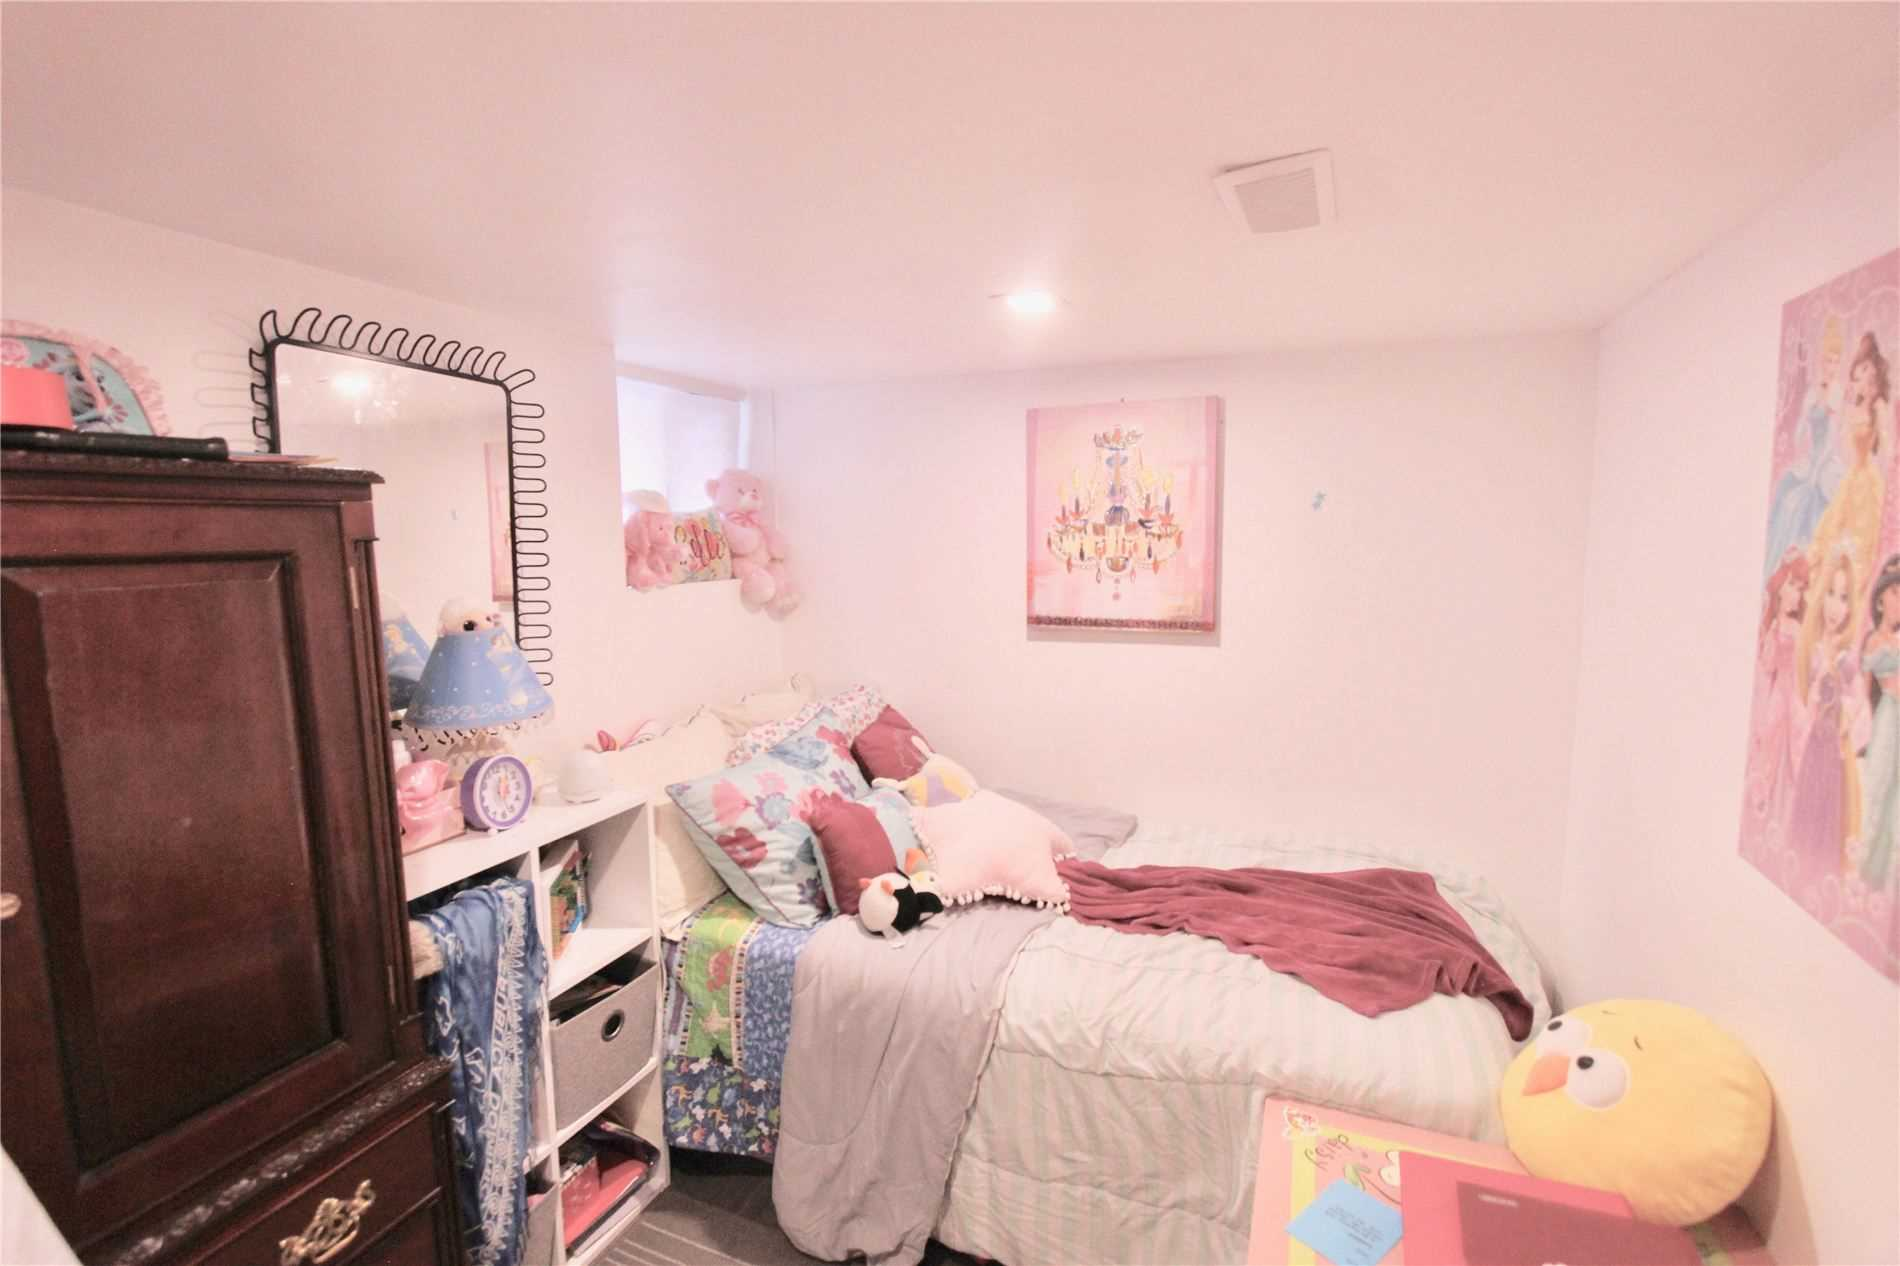 Detached house For Lease In Toronto - 62 Belvidere Ave, Toronto, Ontario, Canada M6C1P6 , 2 Bedrooms Bedrooms, ,1 BathroomBathrooms,Detached,For Lease,Lower,Belvidere